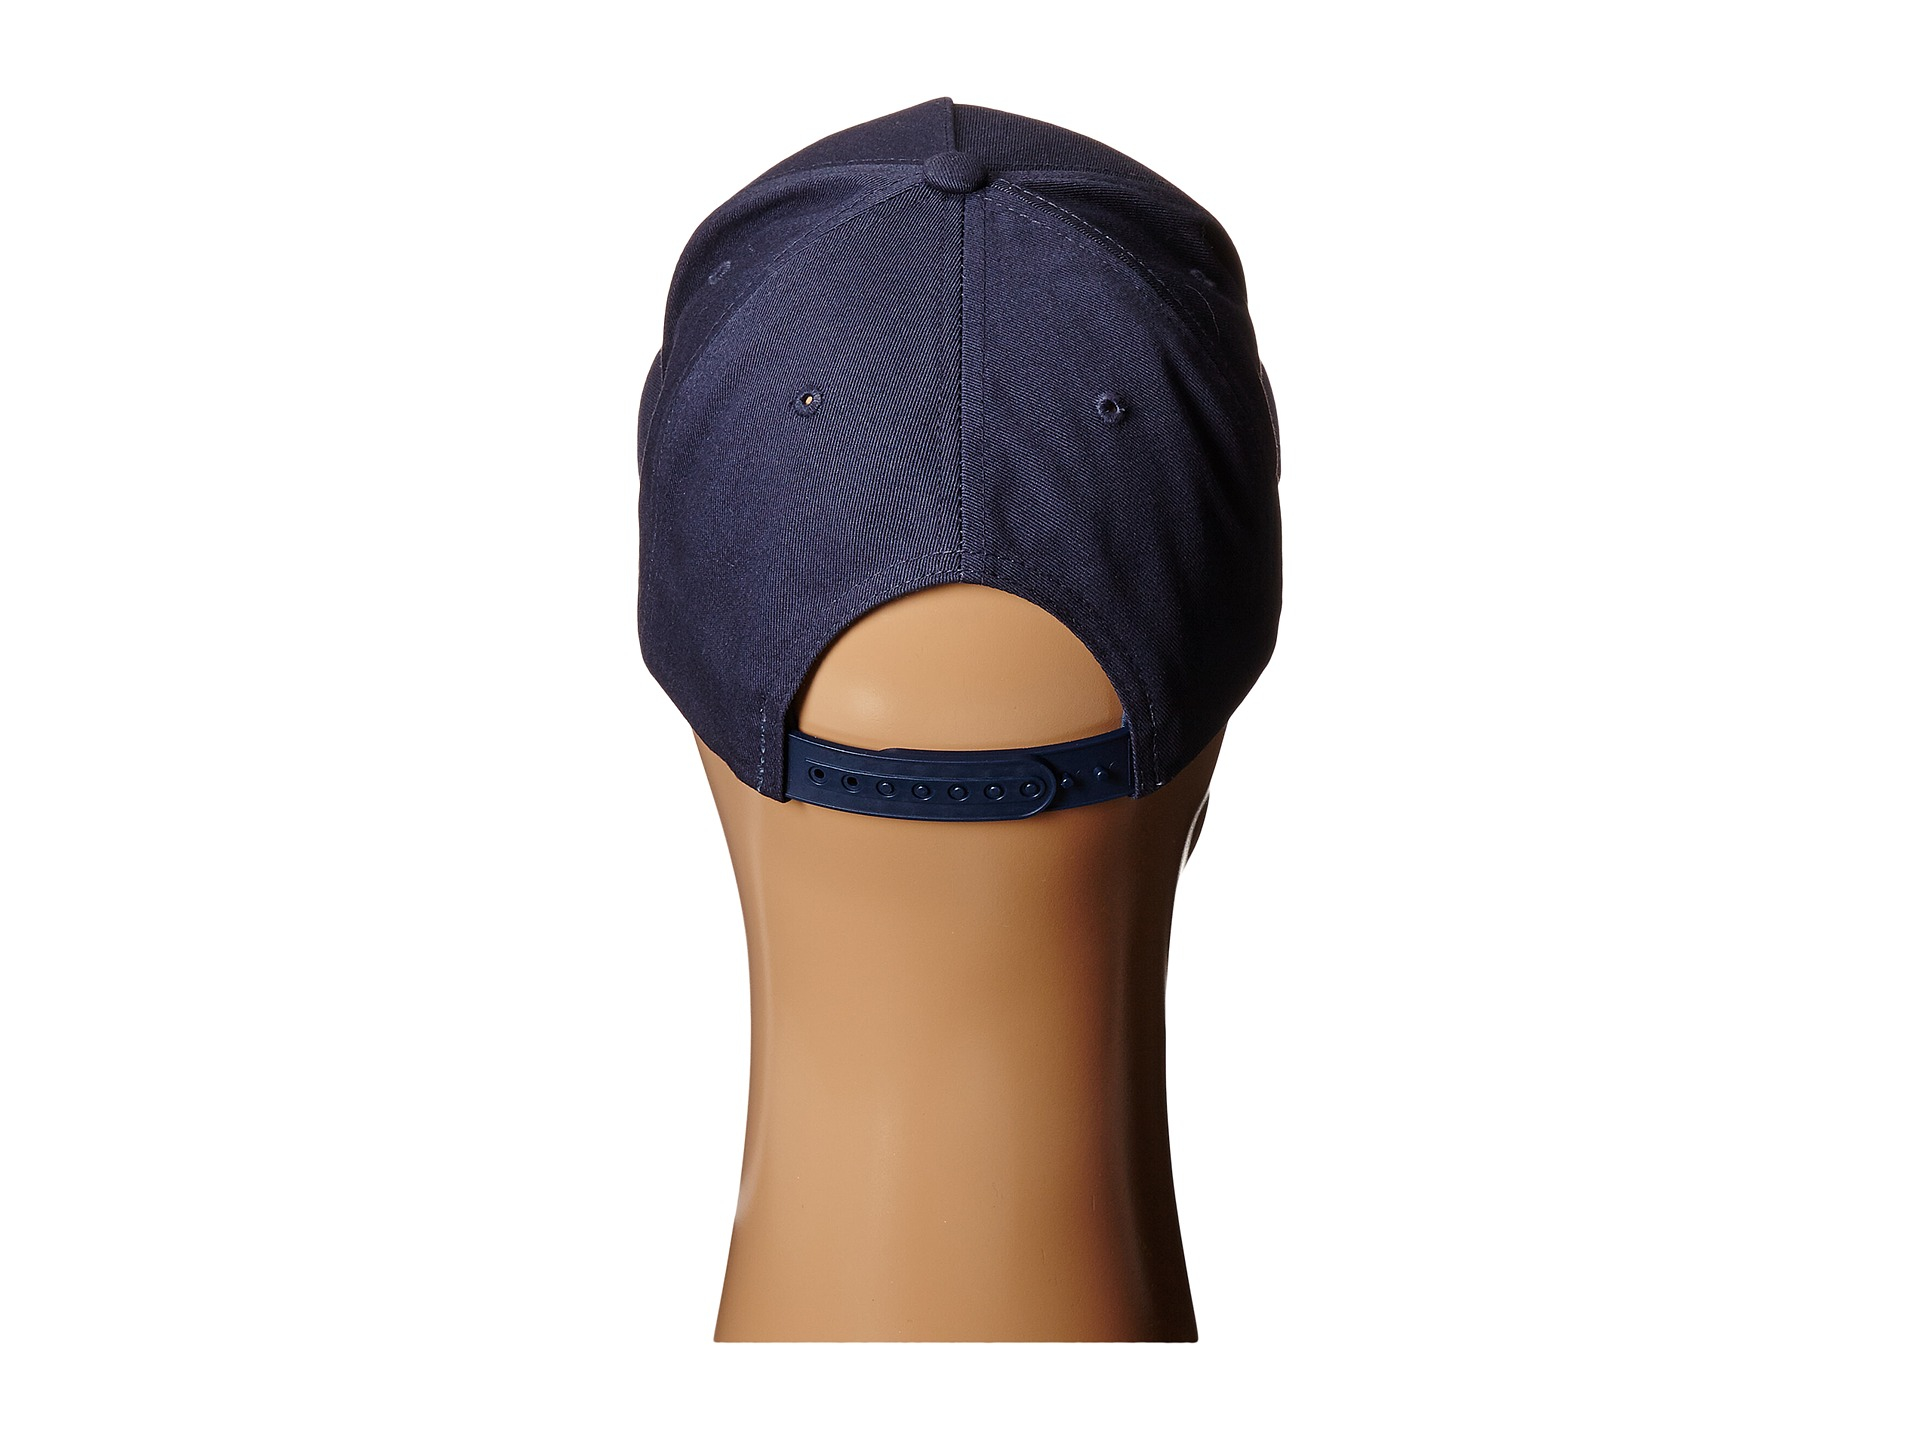 Lyst - Obey Downtown Snapback Hat in Blue for Men cd1be9063d91